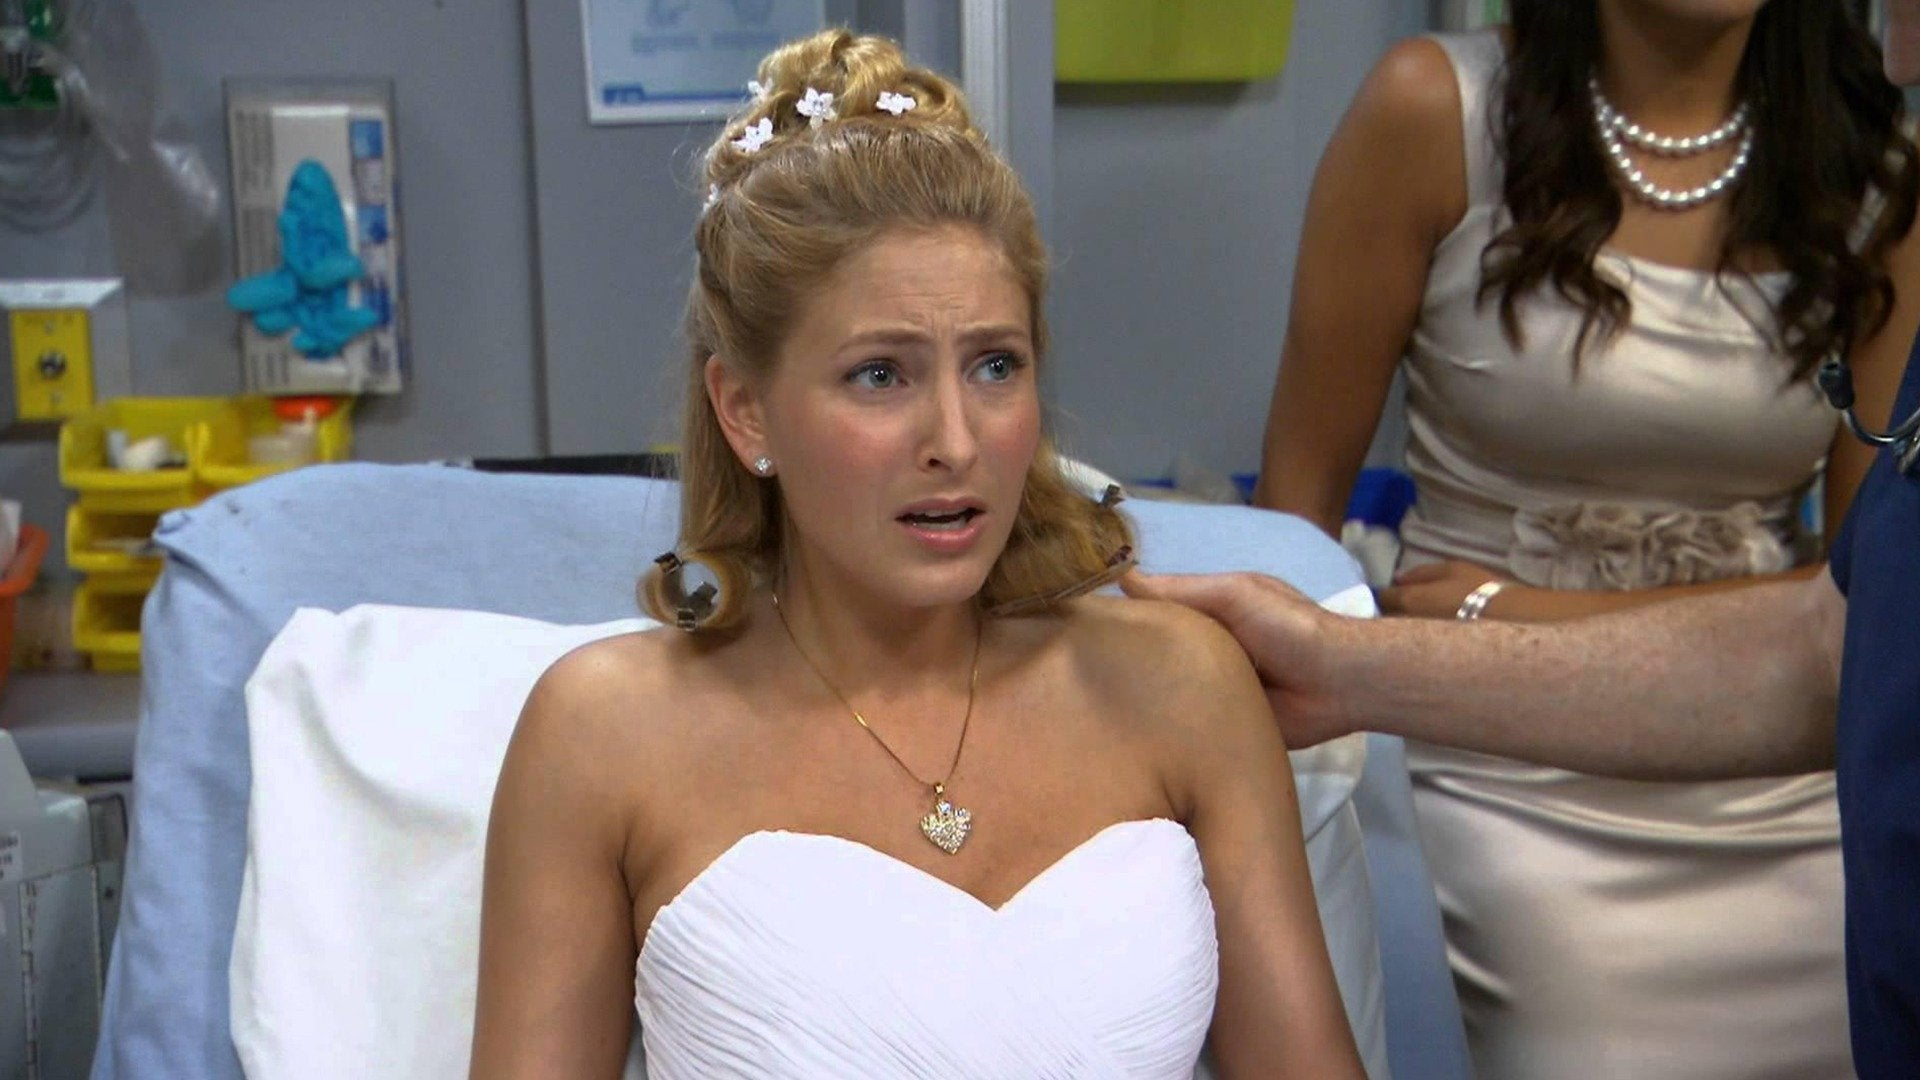 Untold Stories of the ER: Wedding Day Mishaps